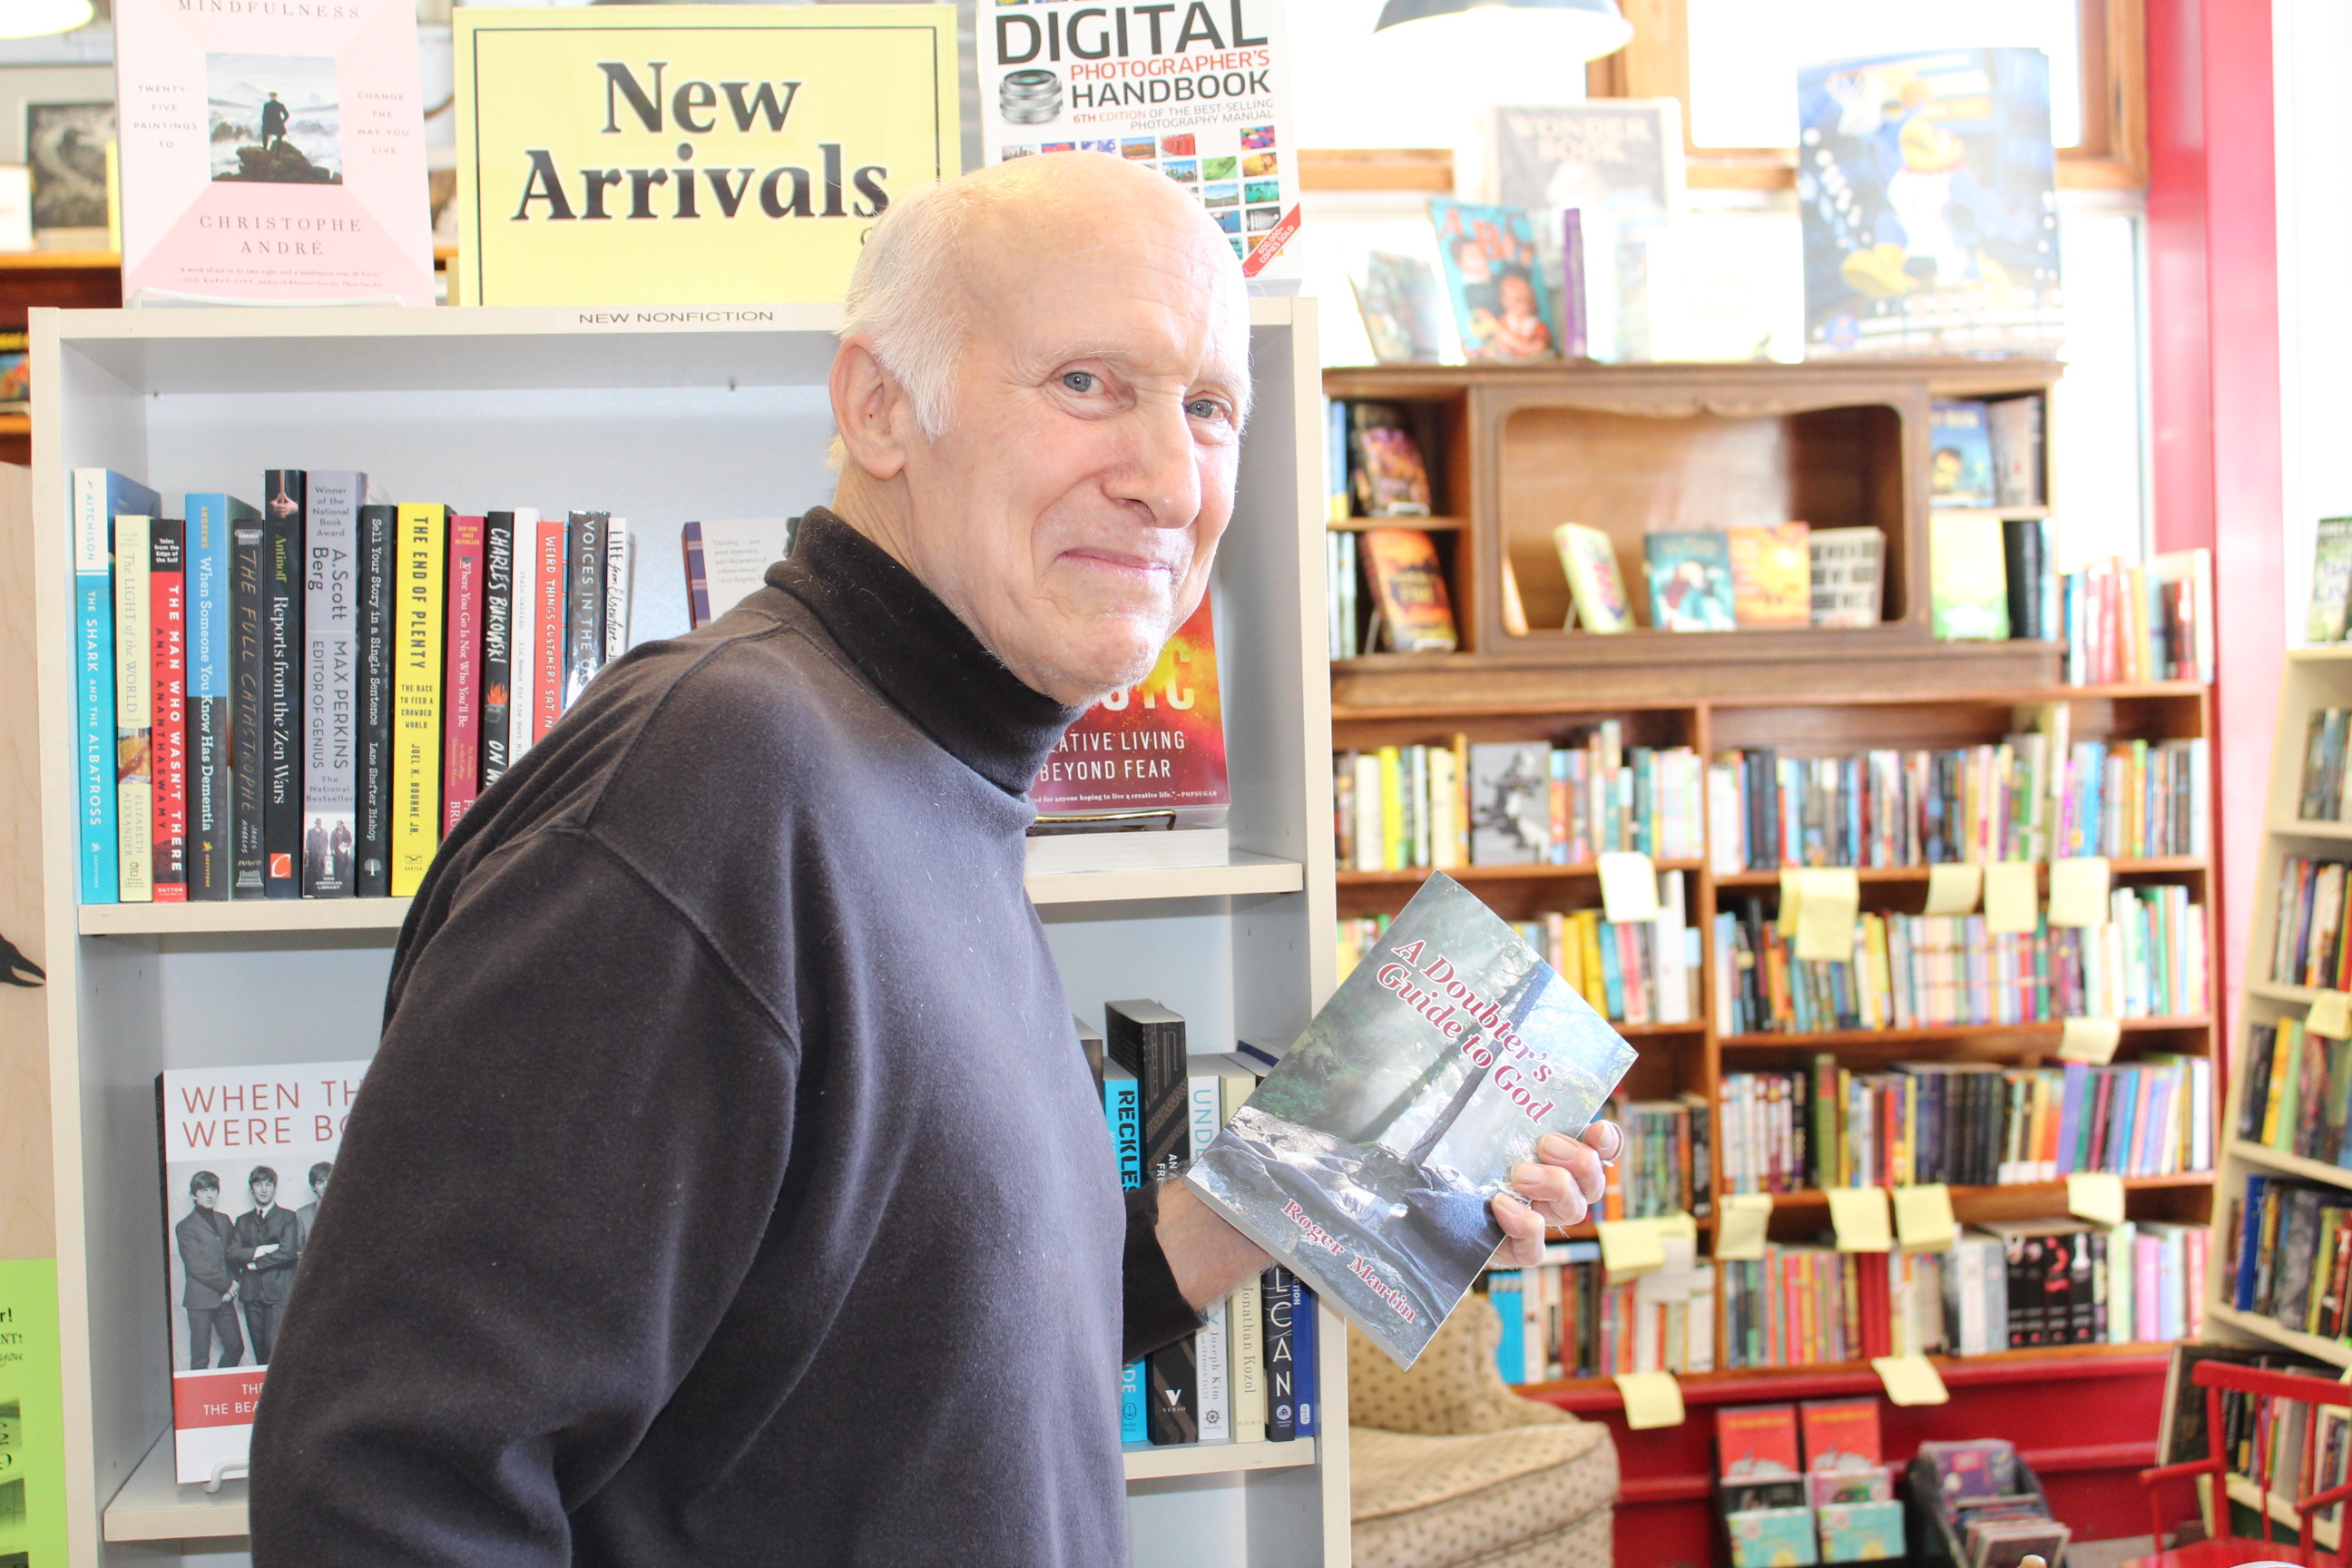 Lawrence writer Roger Martin attempts to shoplift one of his own books at the Raven Book Store in downtown Lawrence. Just kidding. (Photo by J. Schafer)